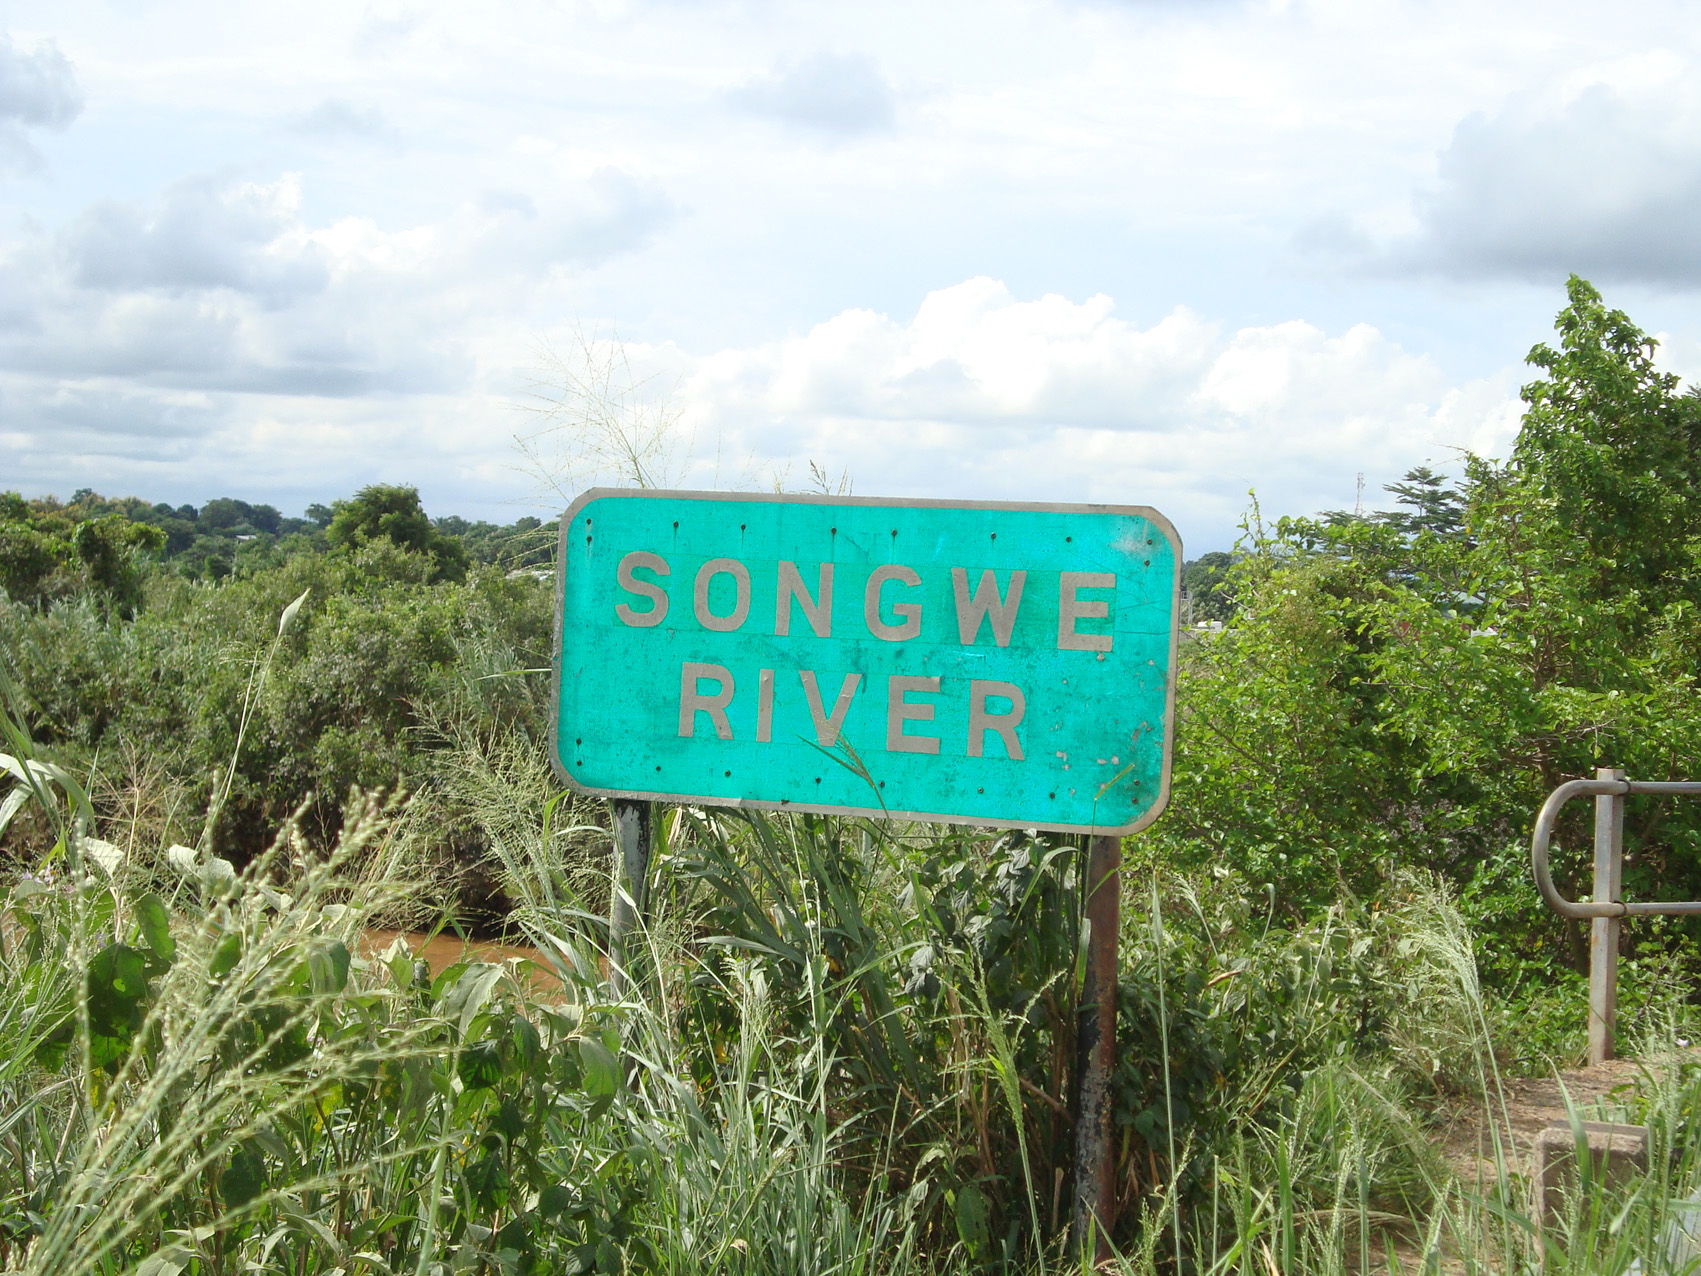 Songwe river on the Tanzania-Malawi border, where most Ethiopian immigrants cross into Malawi on their way to South Africa